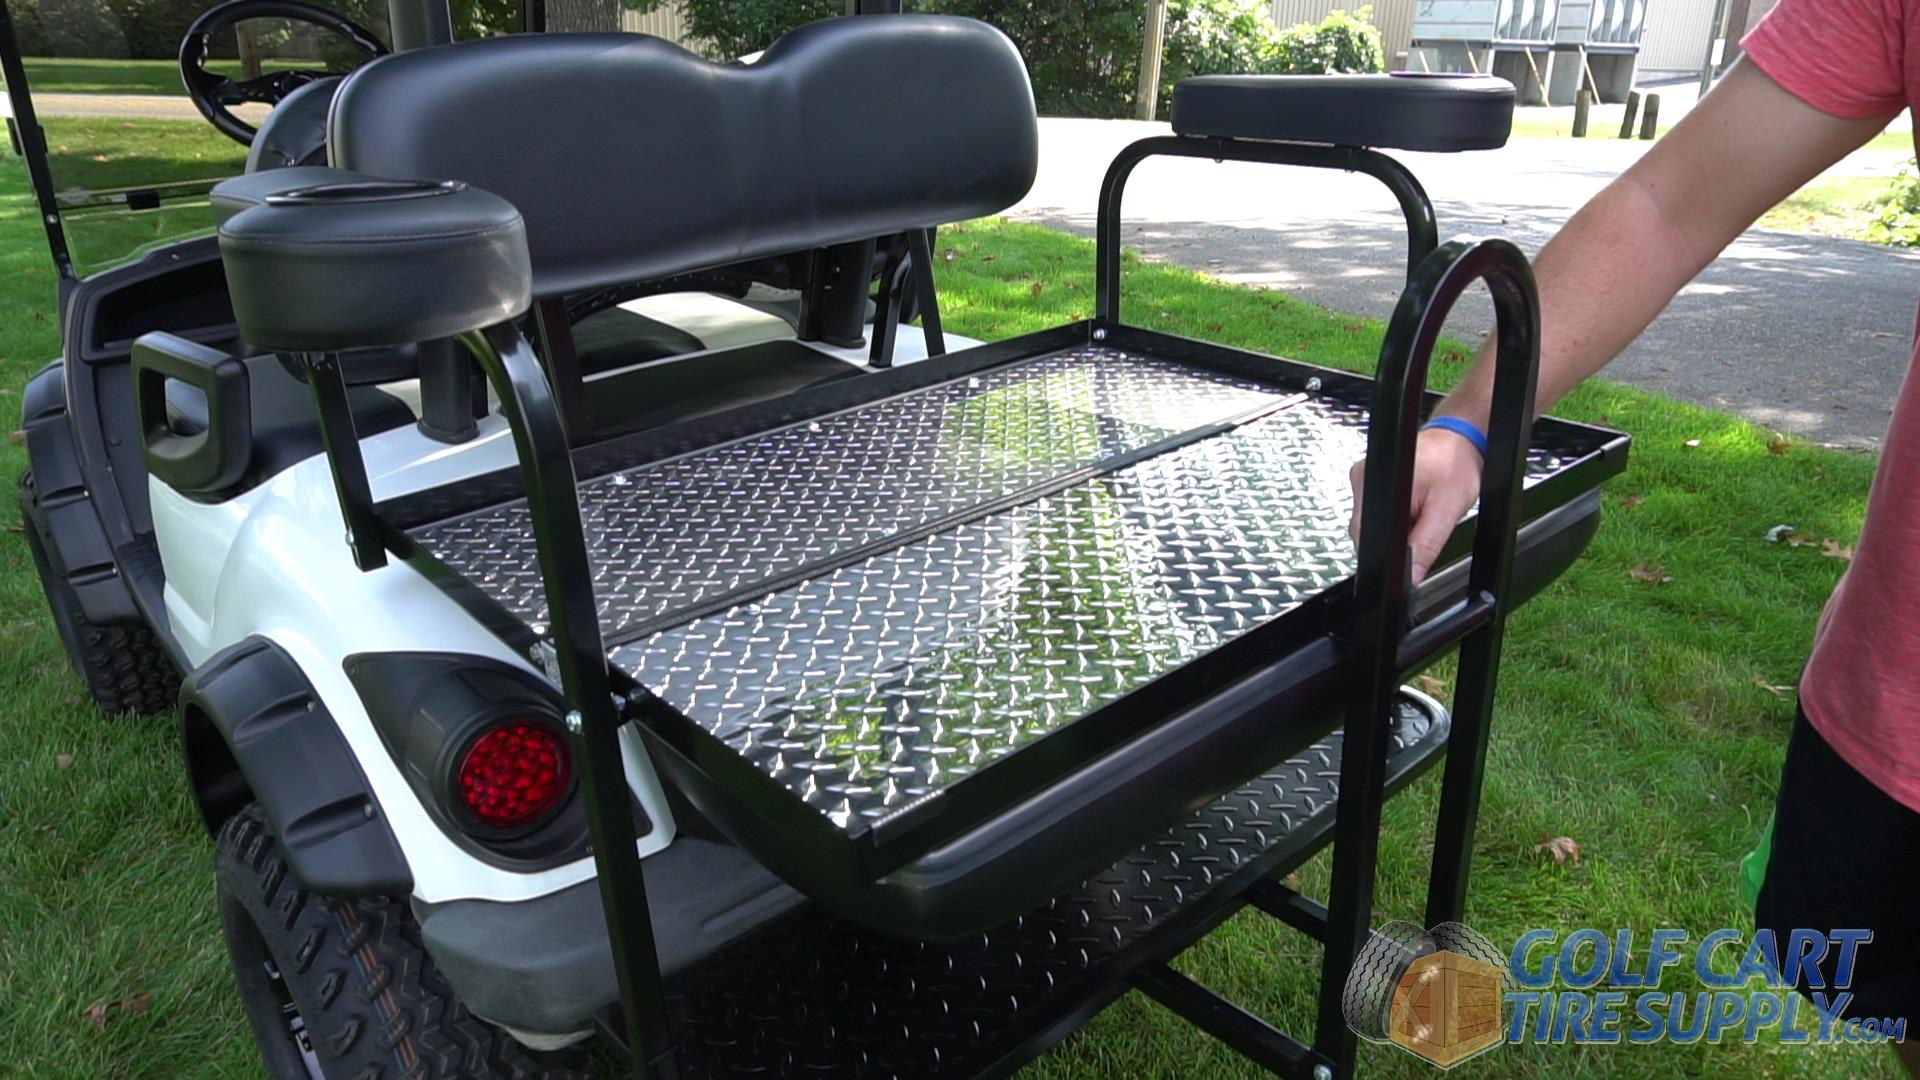 golf-cart-rear-seat-cargo-bed-01.jpg